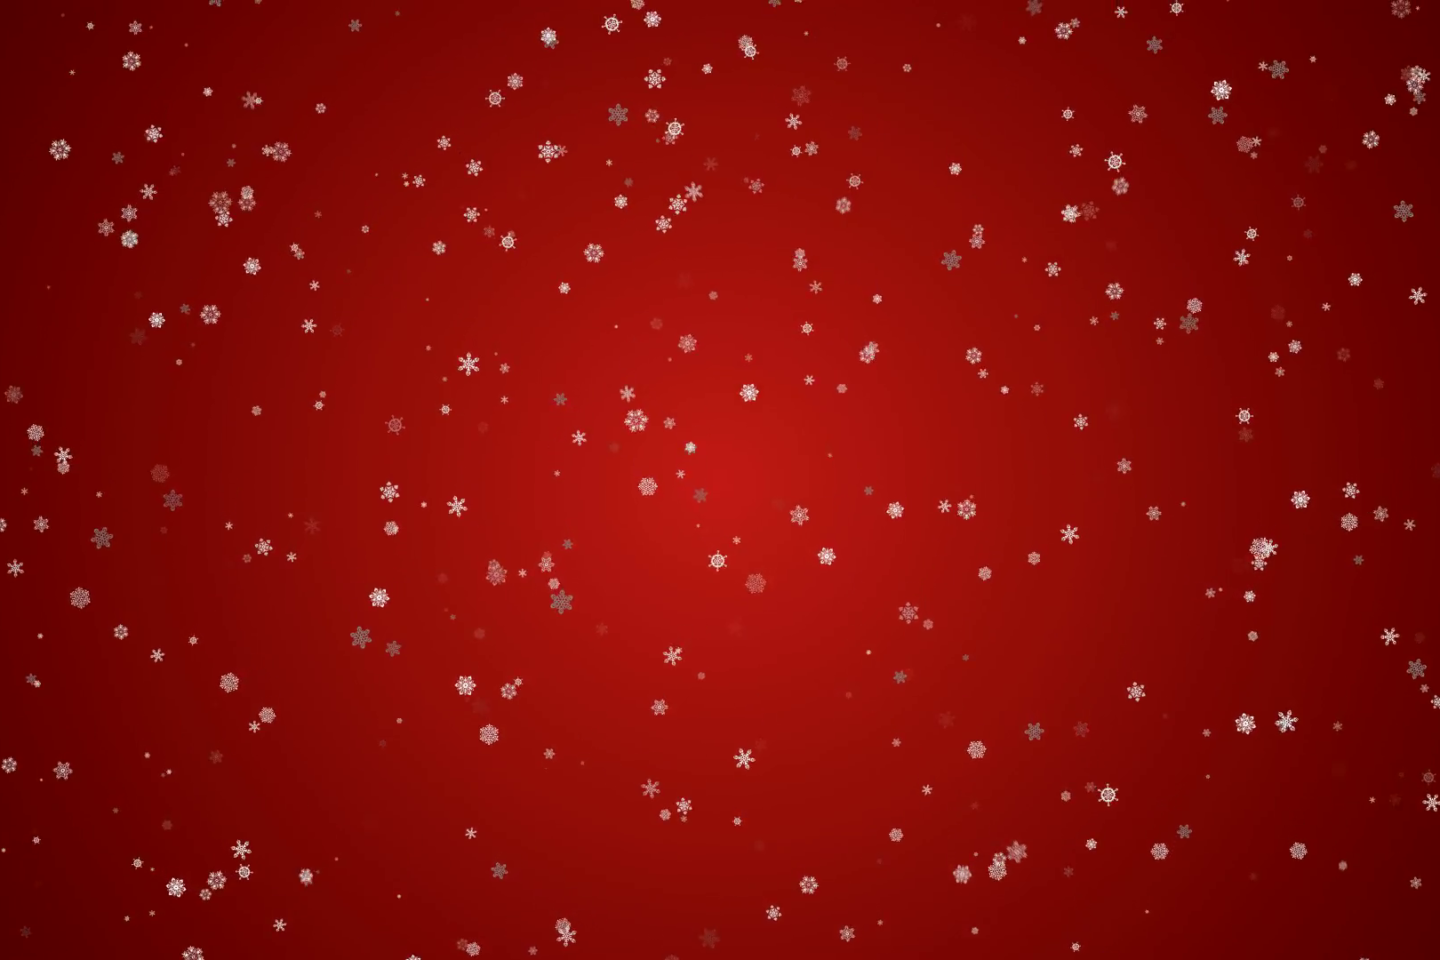 hd-1080-christmas-snow-flakes-light-red-background_4jb6vsbsg__F0000